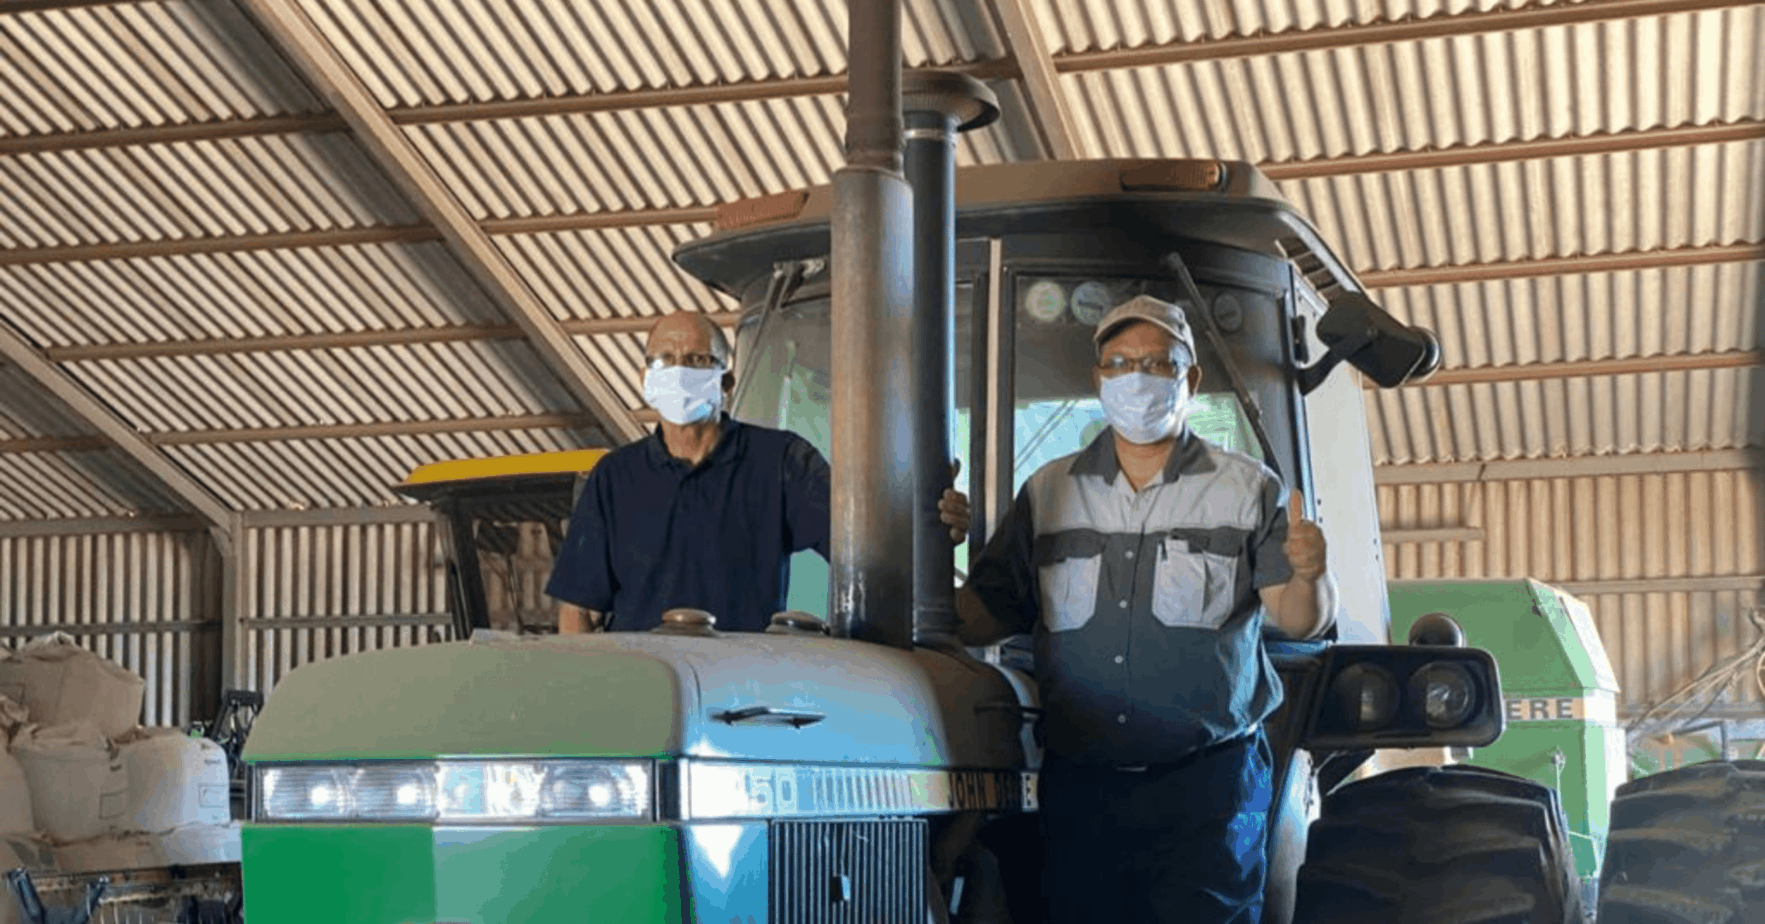 Pig farmer Ivan Cloete with the Western Cape minister of agriculture, Dr Ivan Meyer. Meyer wrote to minister Thoko Didiza to stop government's attempts to move Cloete from the Colenso state farm in Darling in the Western Cape. Photo: Supplied/Food For Mzansi